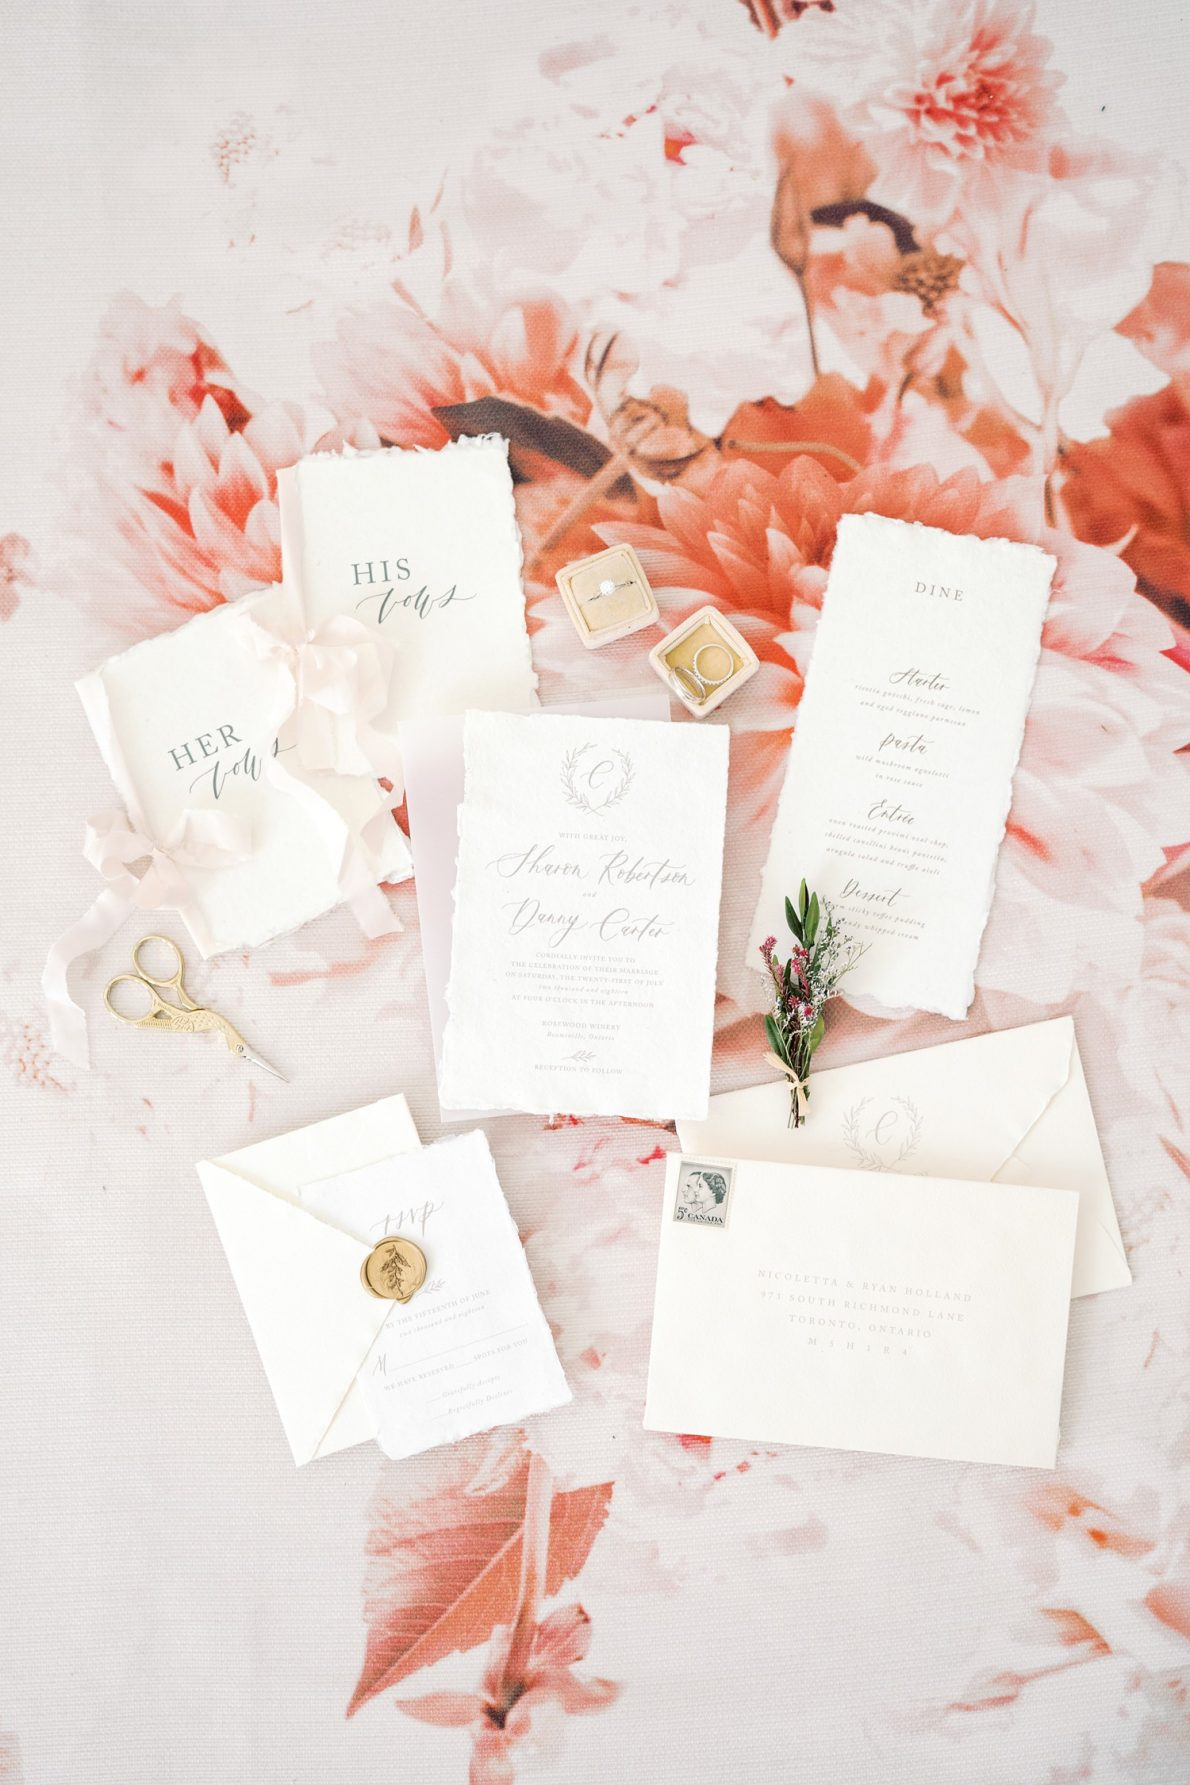 Blush_Florals_Invitations_Calligraphy-Wedding-Stationary-Ivory_and_Twine-Rhythm_Photography